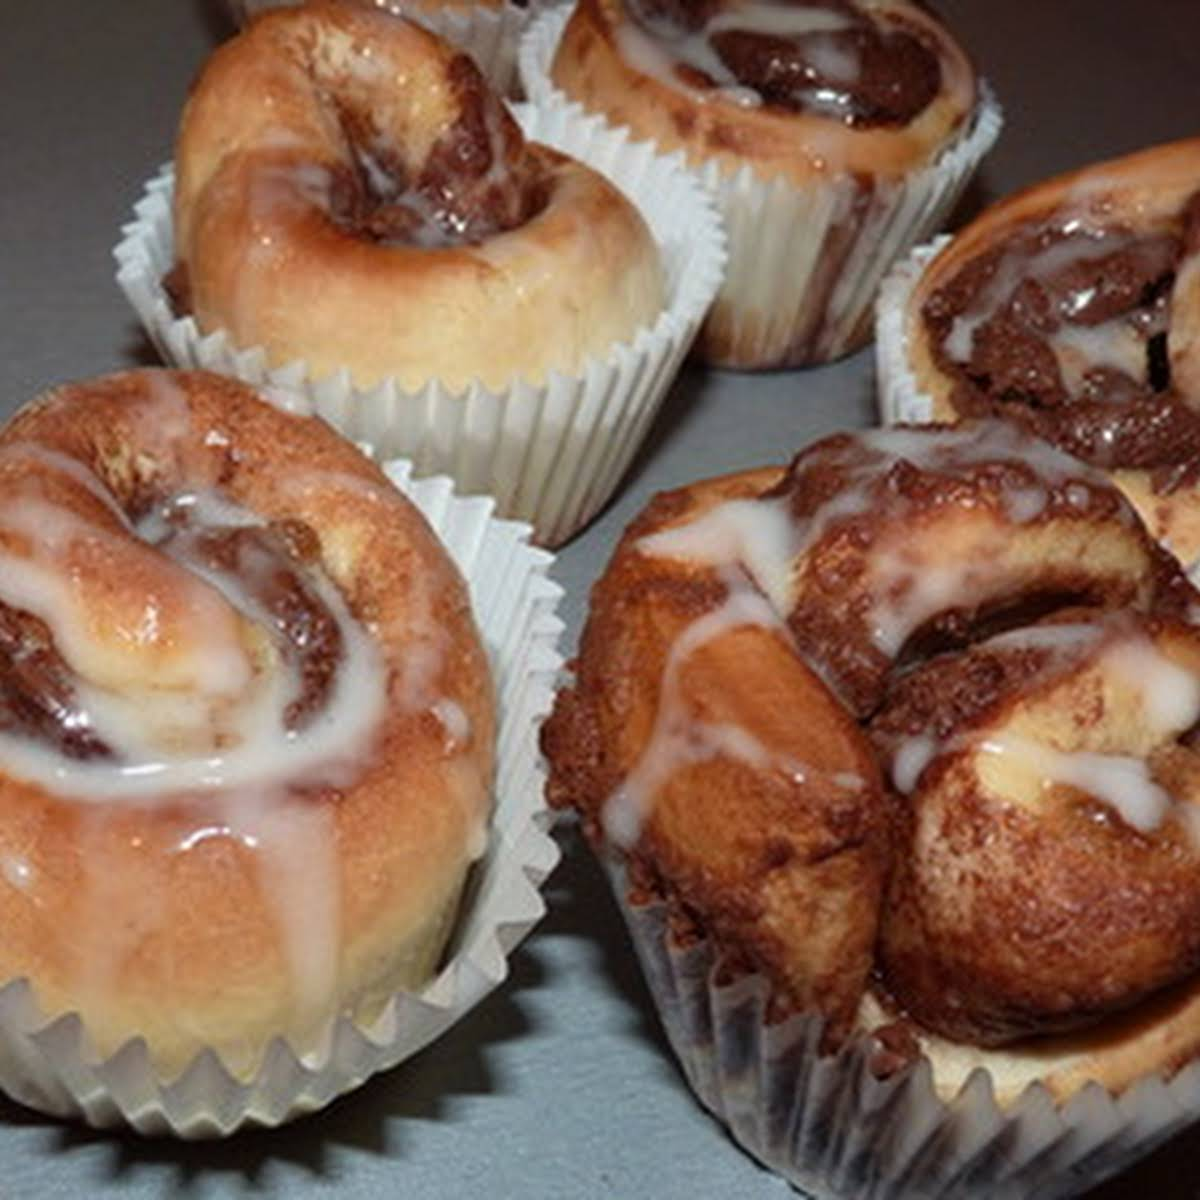 Ultimate Nutella cinnamon roll muffins - from scratch!